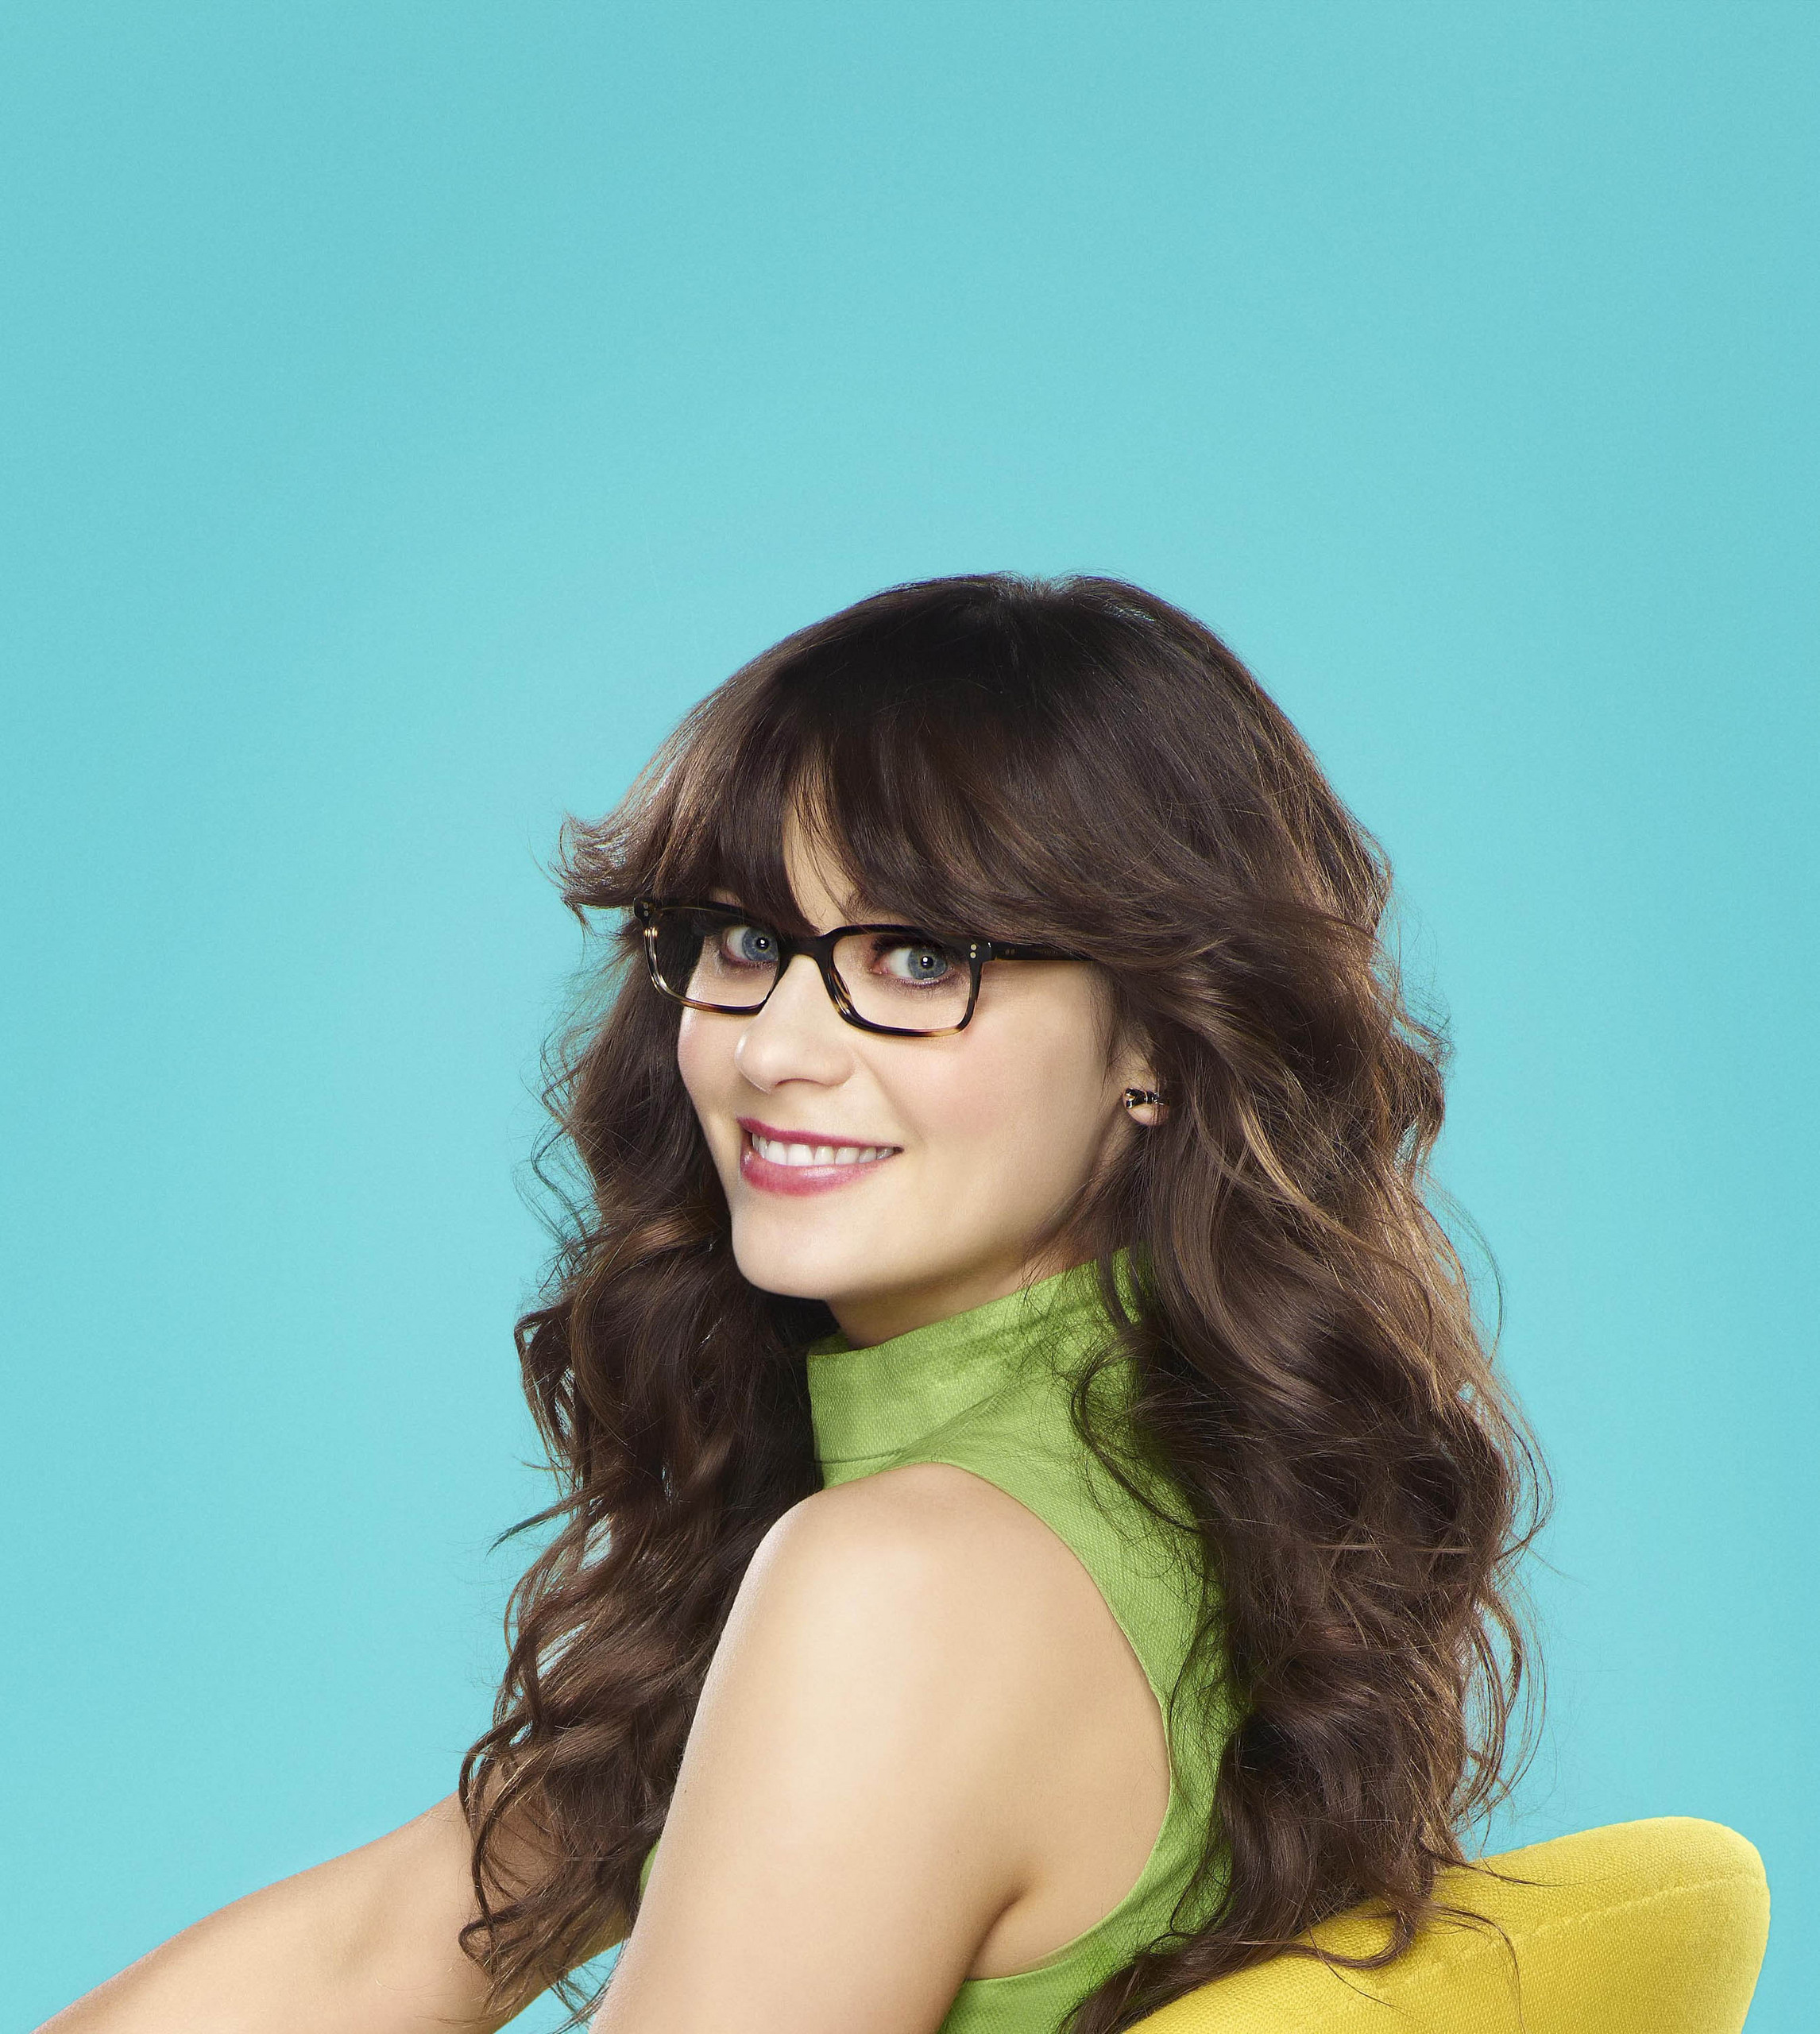 deschanel images zooey in the new girl hd wallpaper and